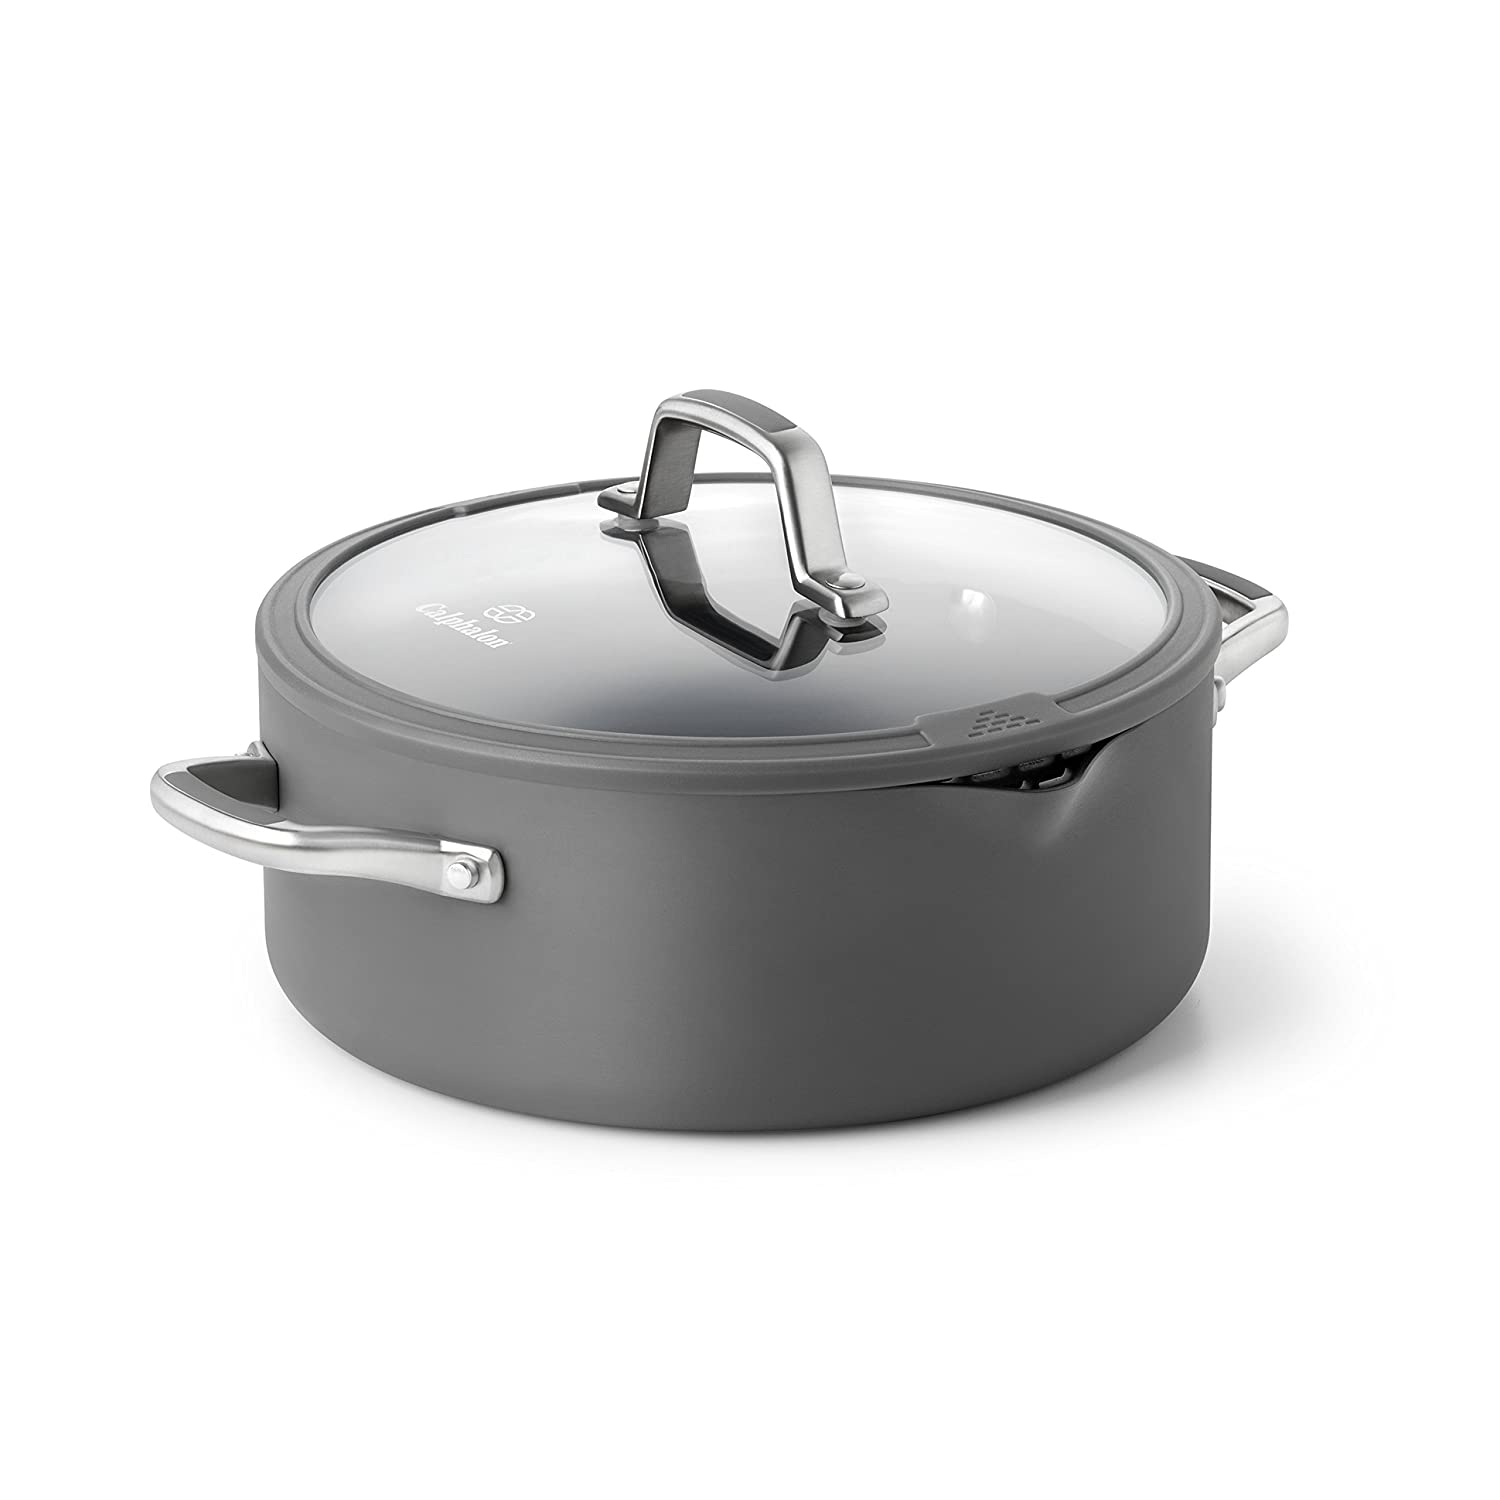 Calphalon Simply Easy System Nonstick Dutch Oven, 5-Quart, Gray